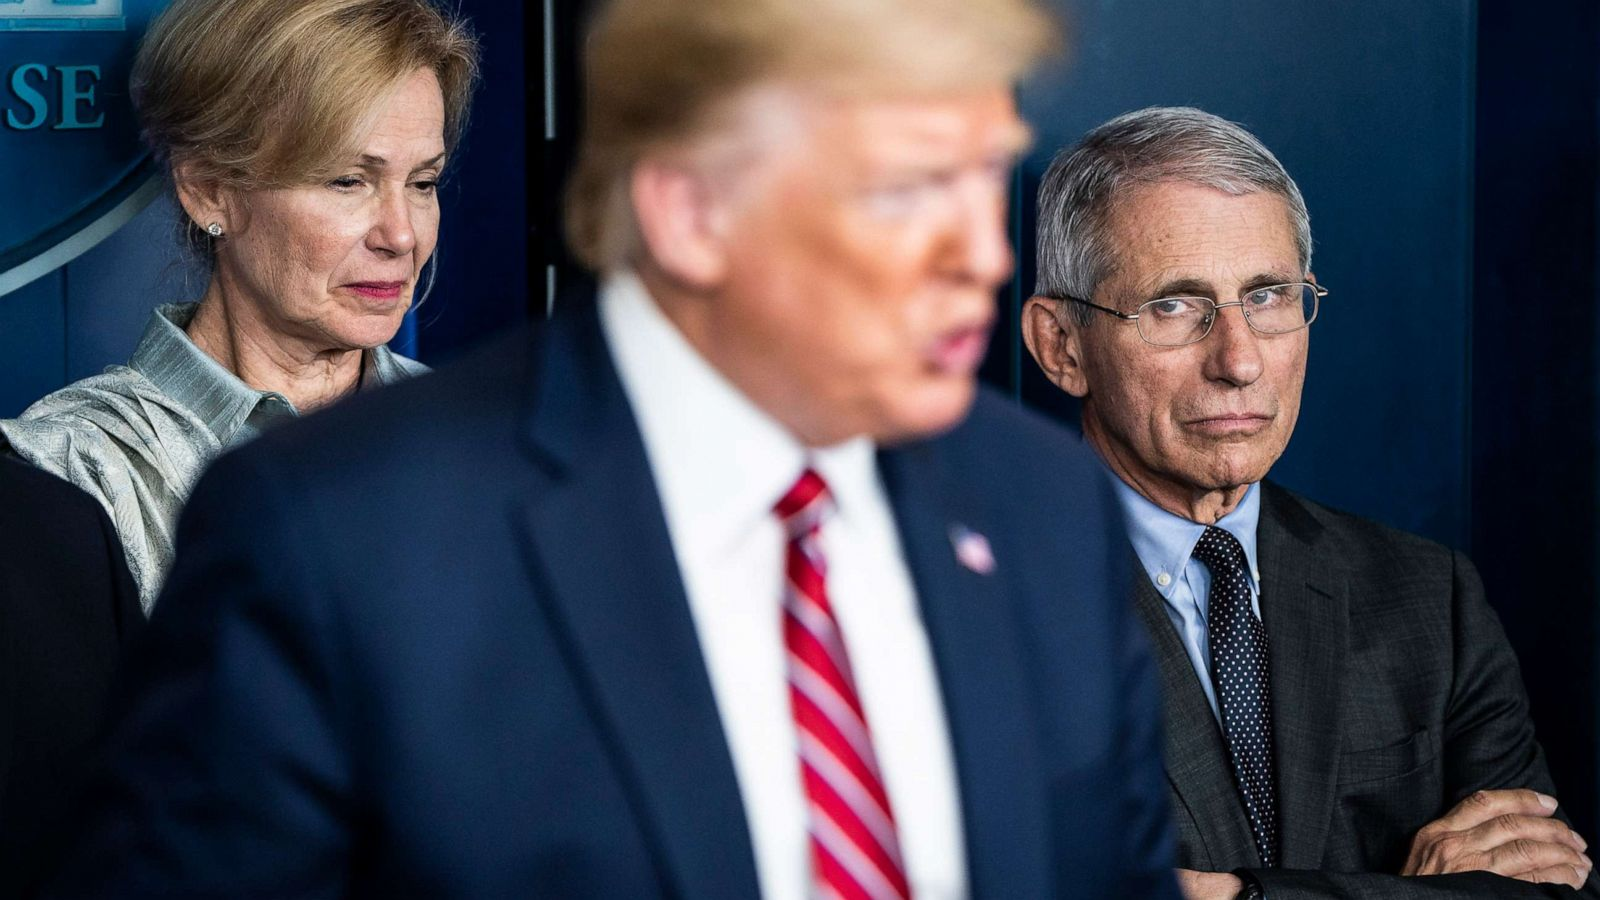 Fauci: Trump's Campaign Ad Butchered My Words